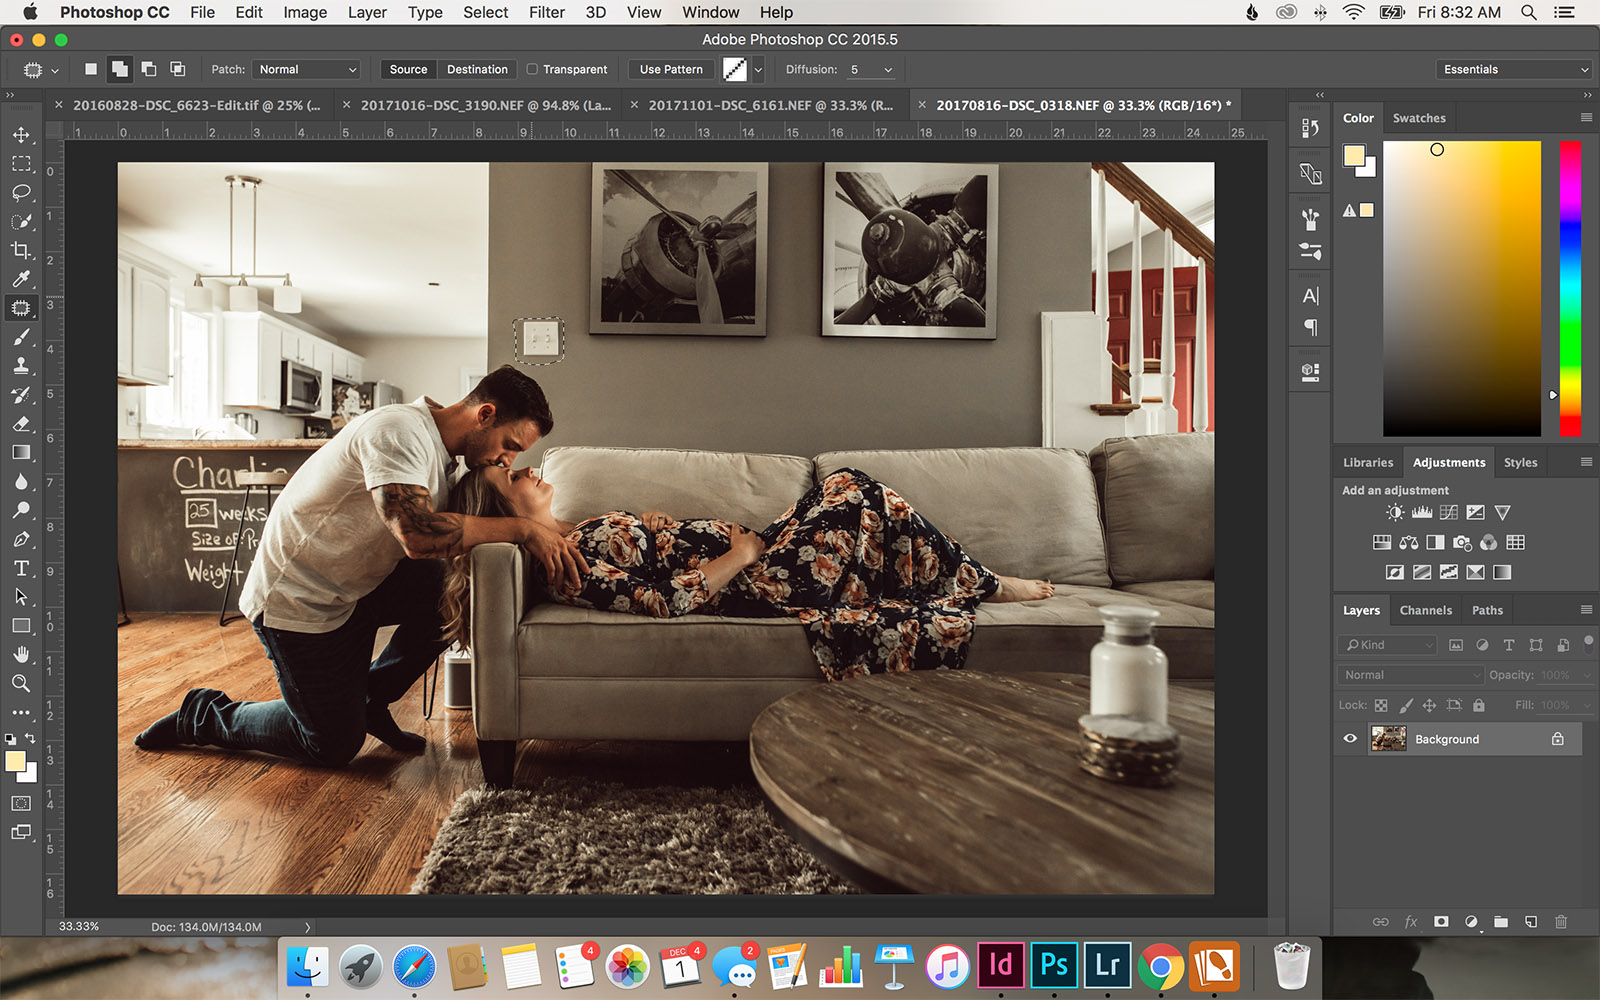 I'm a Lightroom girl. However, there are a few situations where Photoshop can deliver a result that is stronger or faster than what I can do in Lightroom.